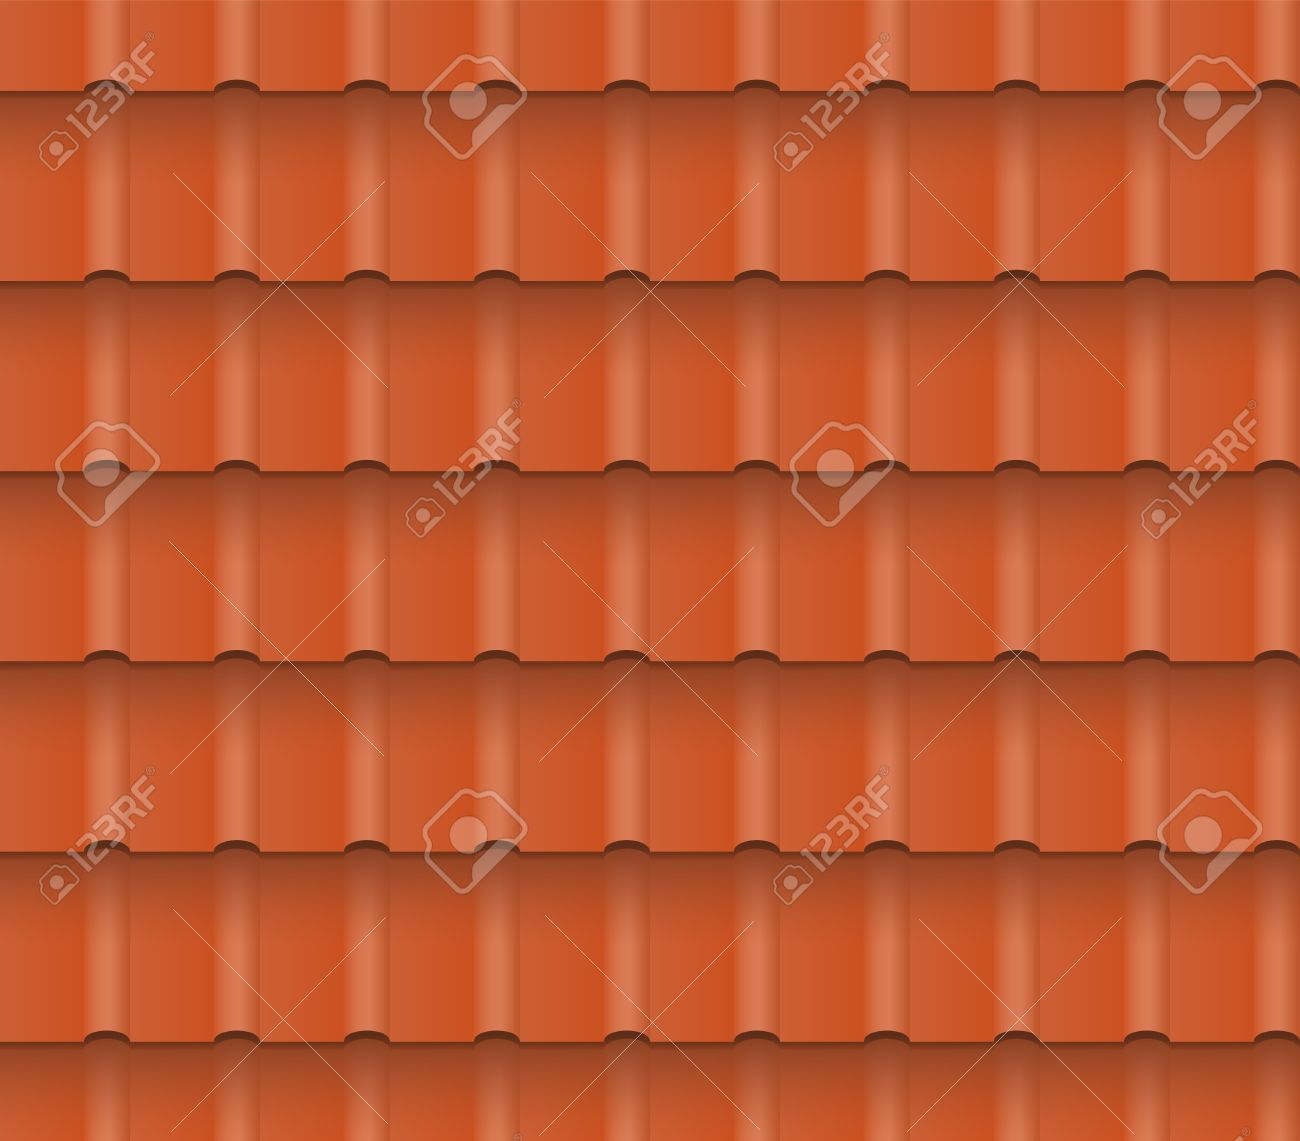 Metal Or Clay Roof Tiles For Roofing Houses. Seamless Pattern. EPS 10. Stock